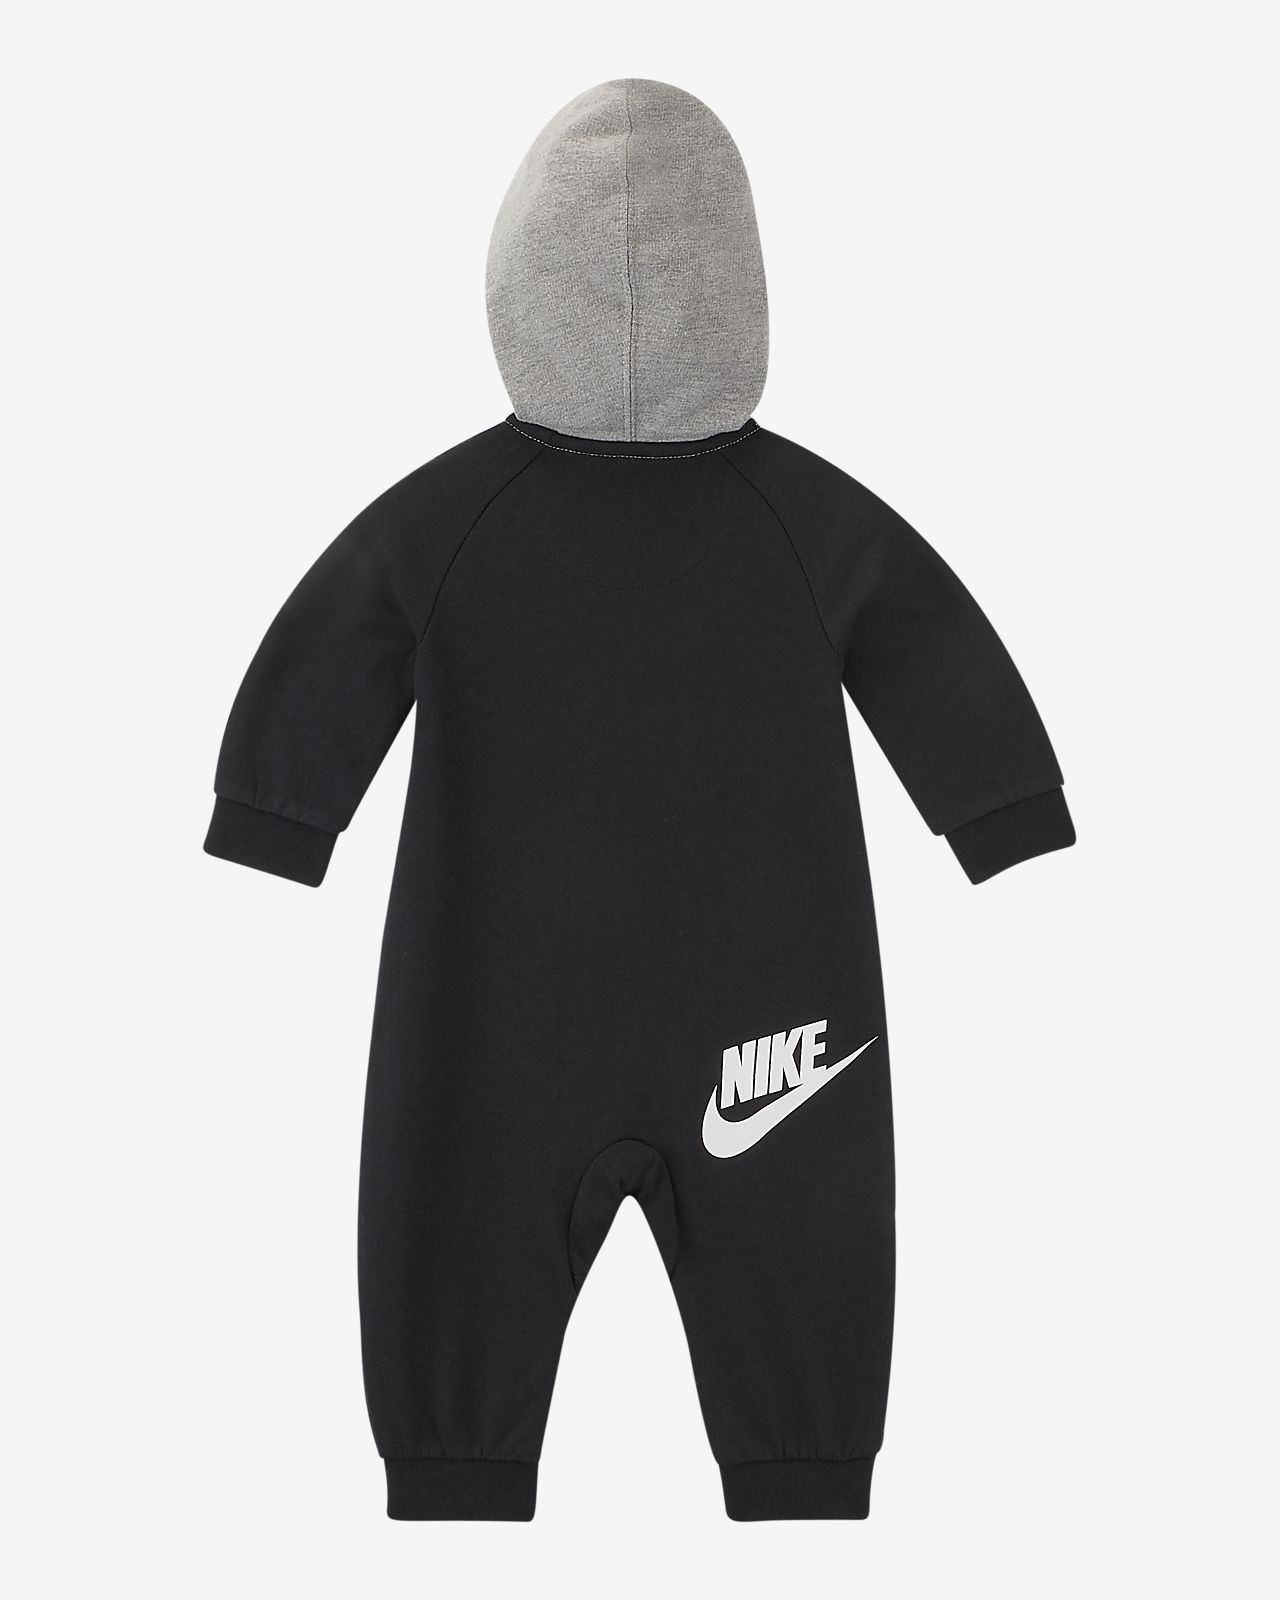 78a8c0b22bf2 Nike Sportswear Baby (0–9M) Hooded Overalls. Nike.com GB